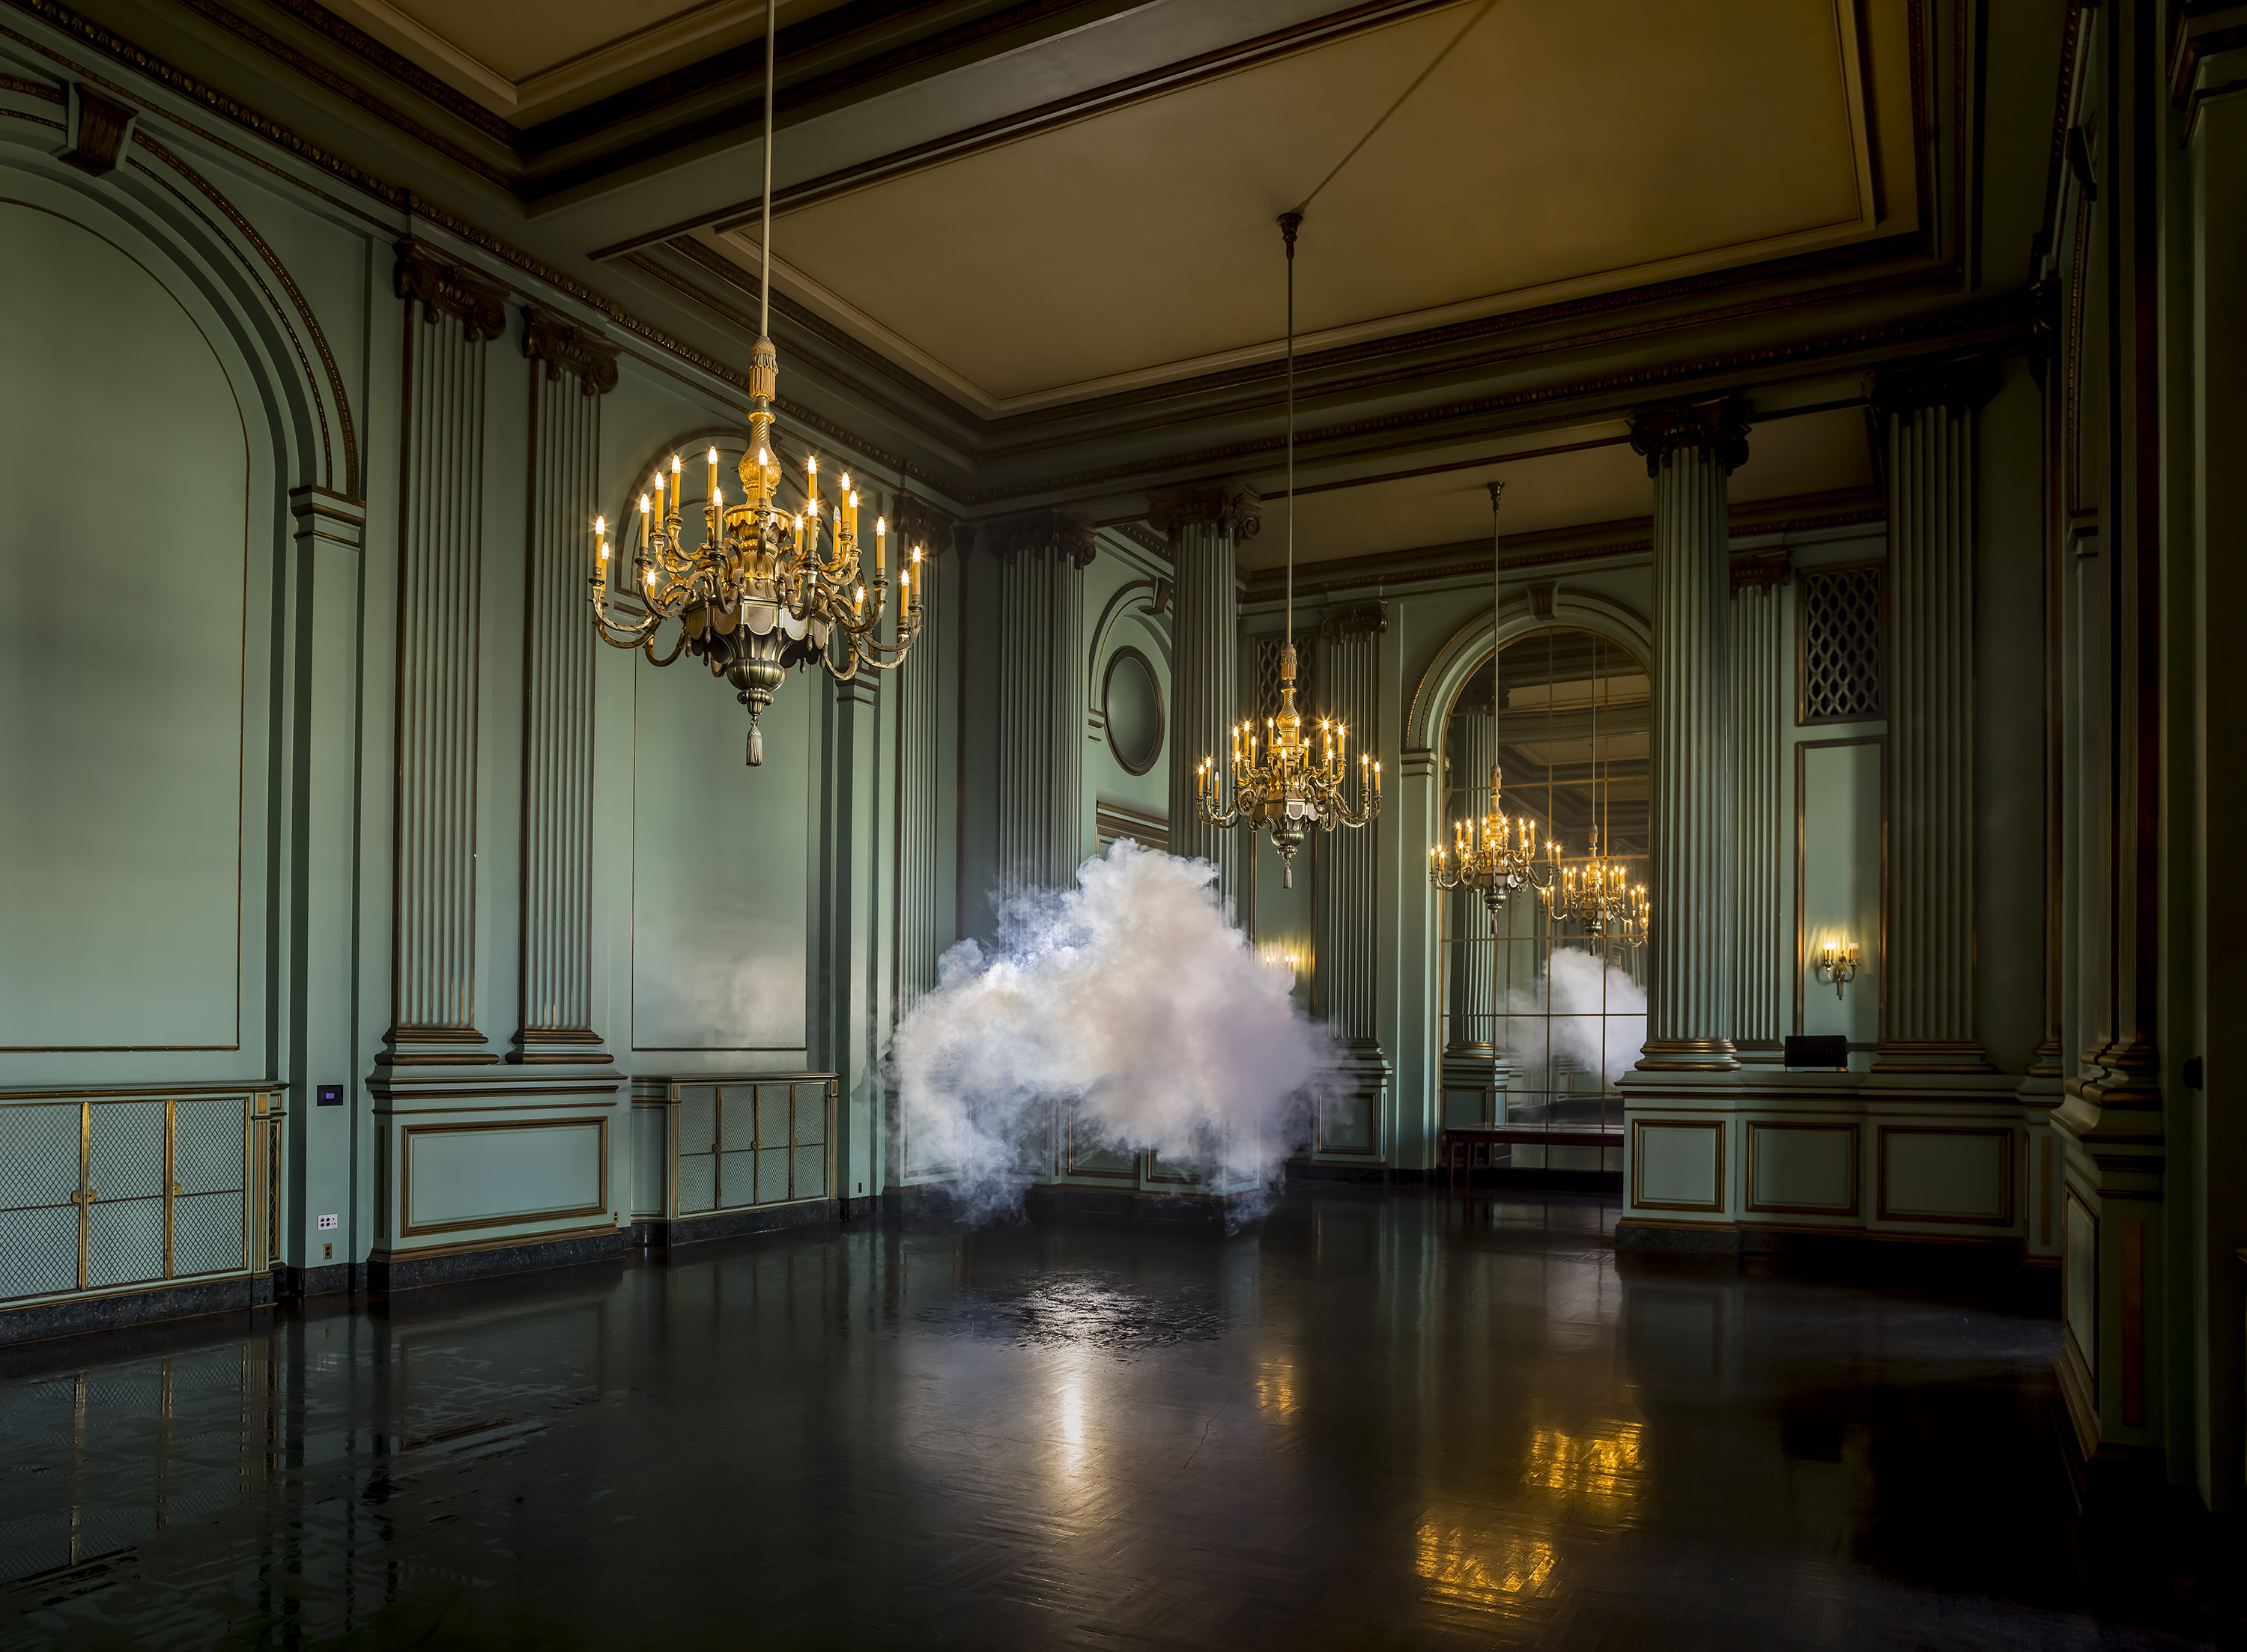 Berndnaut Smilde, Nimbus Green Room, 2013  digital C-type print on aluminium 125 x 170 cm